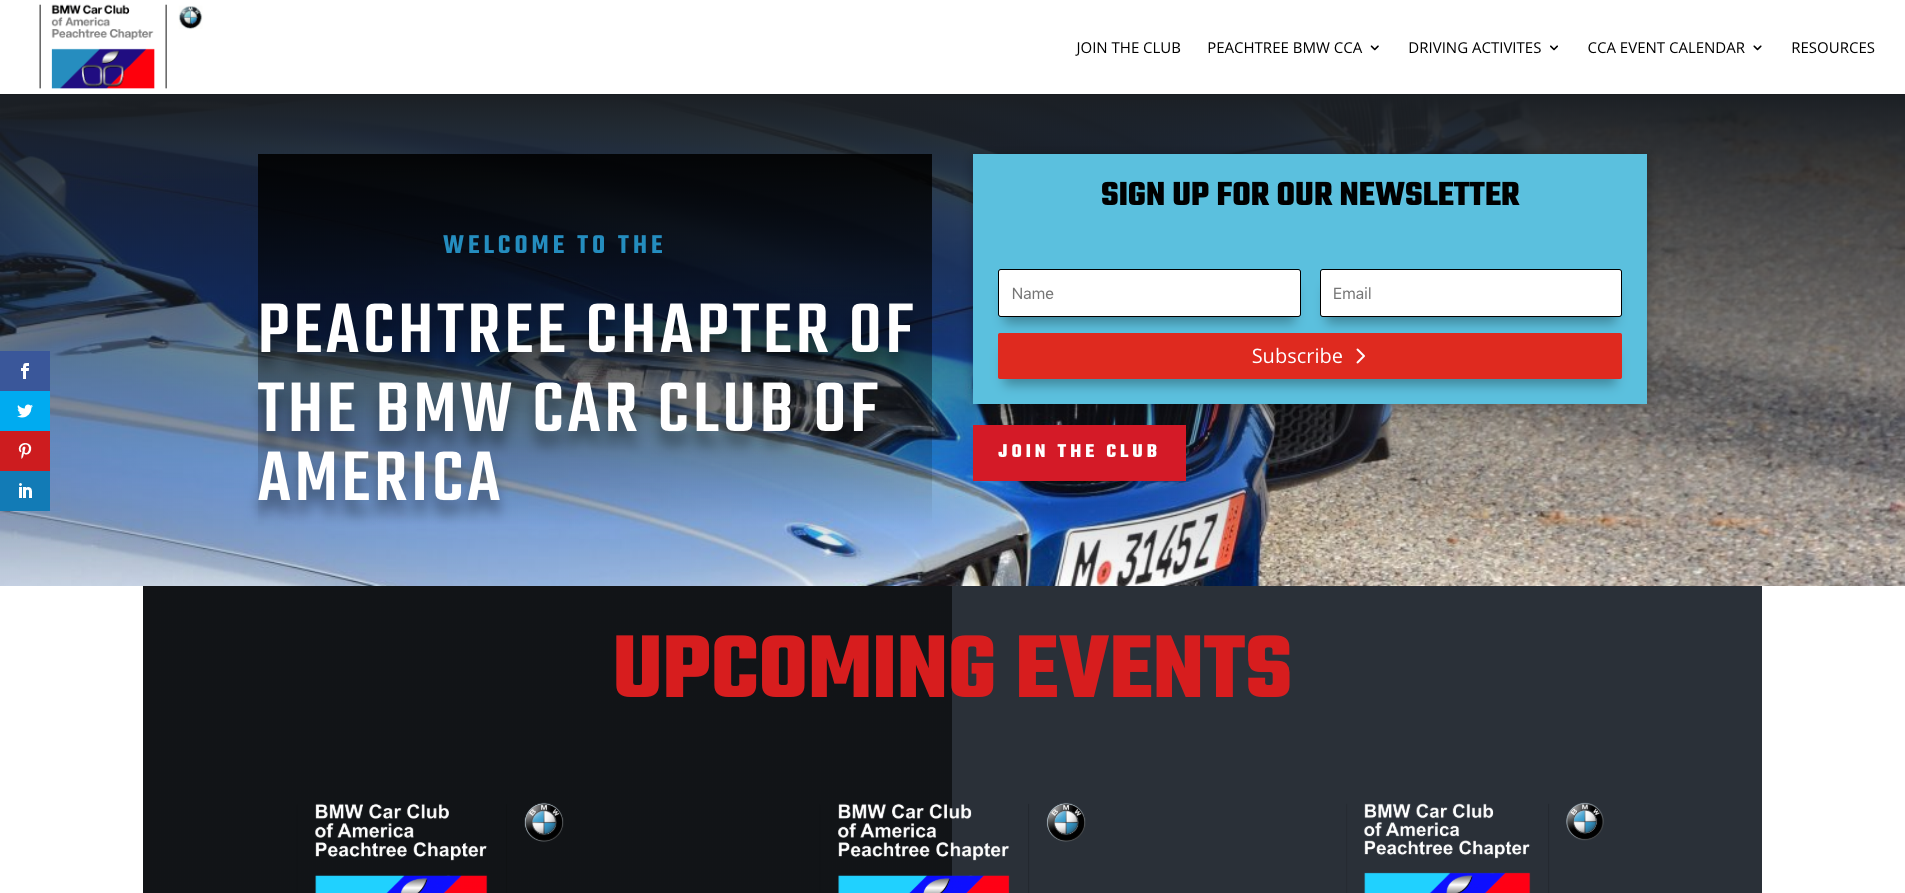 Welcome to the Peachtree Chapter - BMW Car Club of America